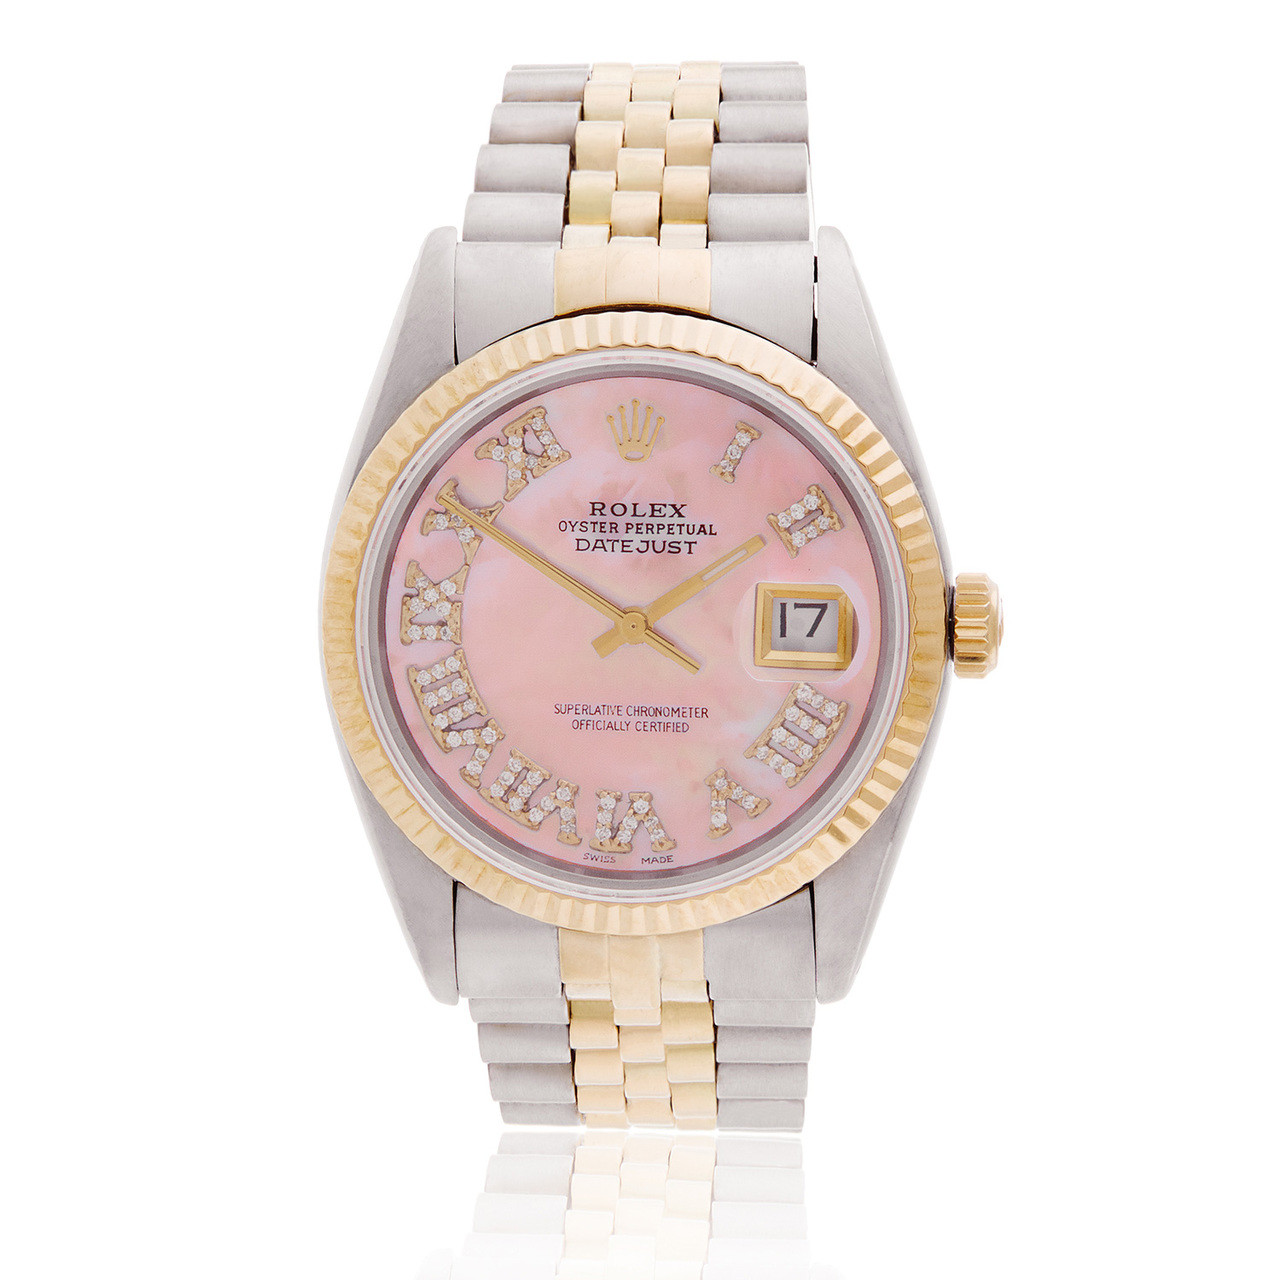 7294dedaf52 Rolex DateJust 36 Pink Mother of Pearl Automatic Men's Watch - Shyne  Jewelers